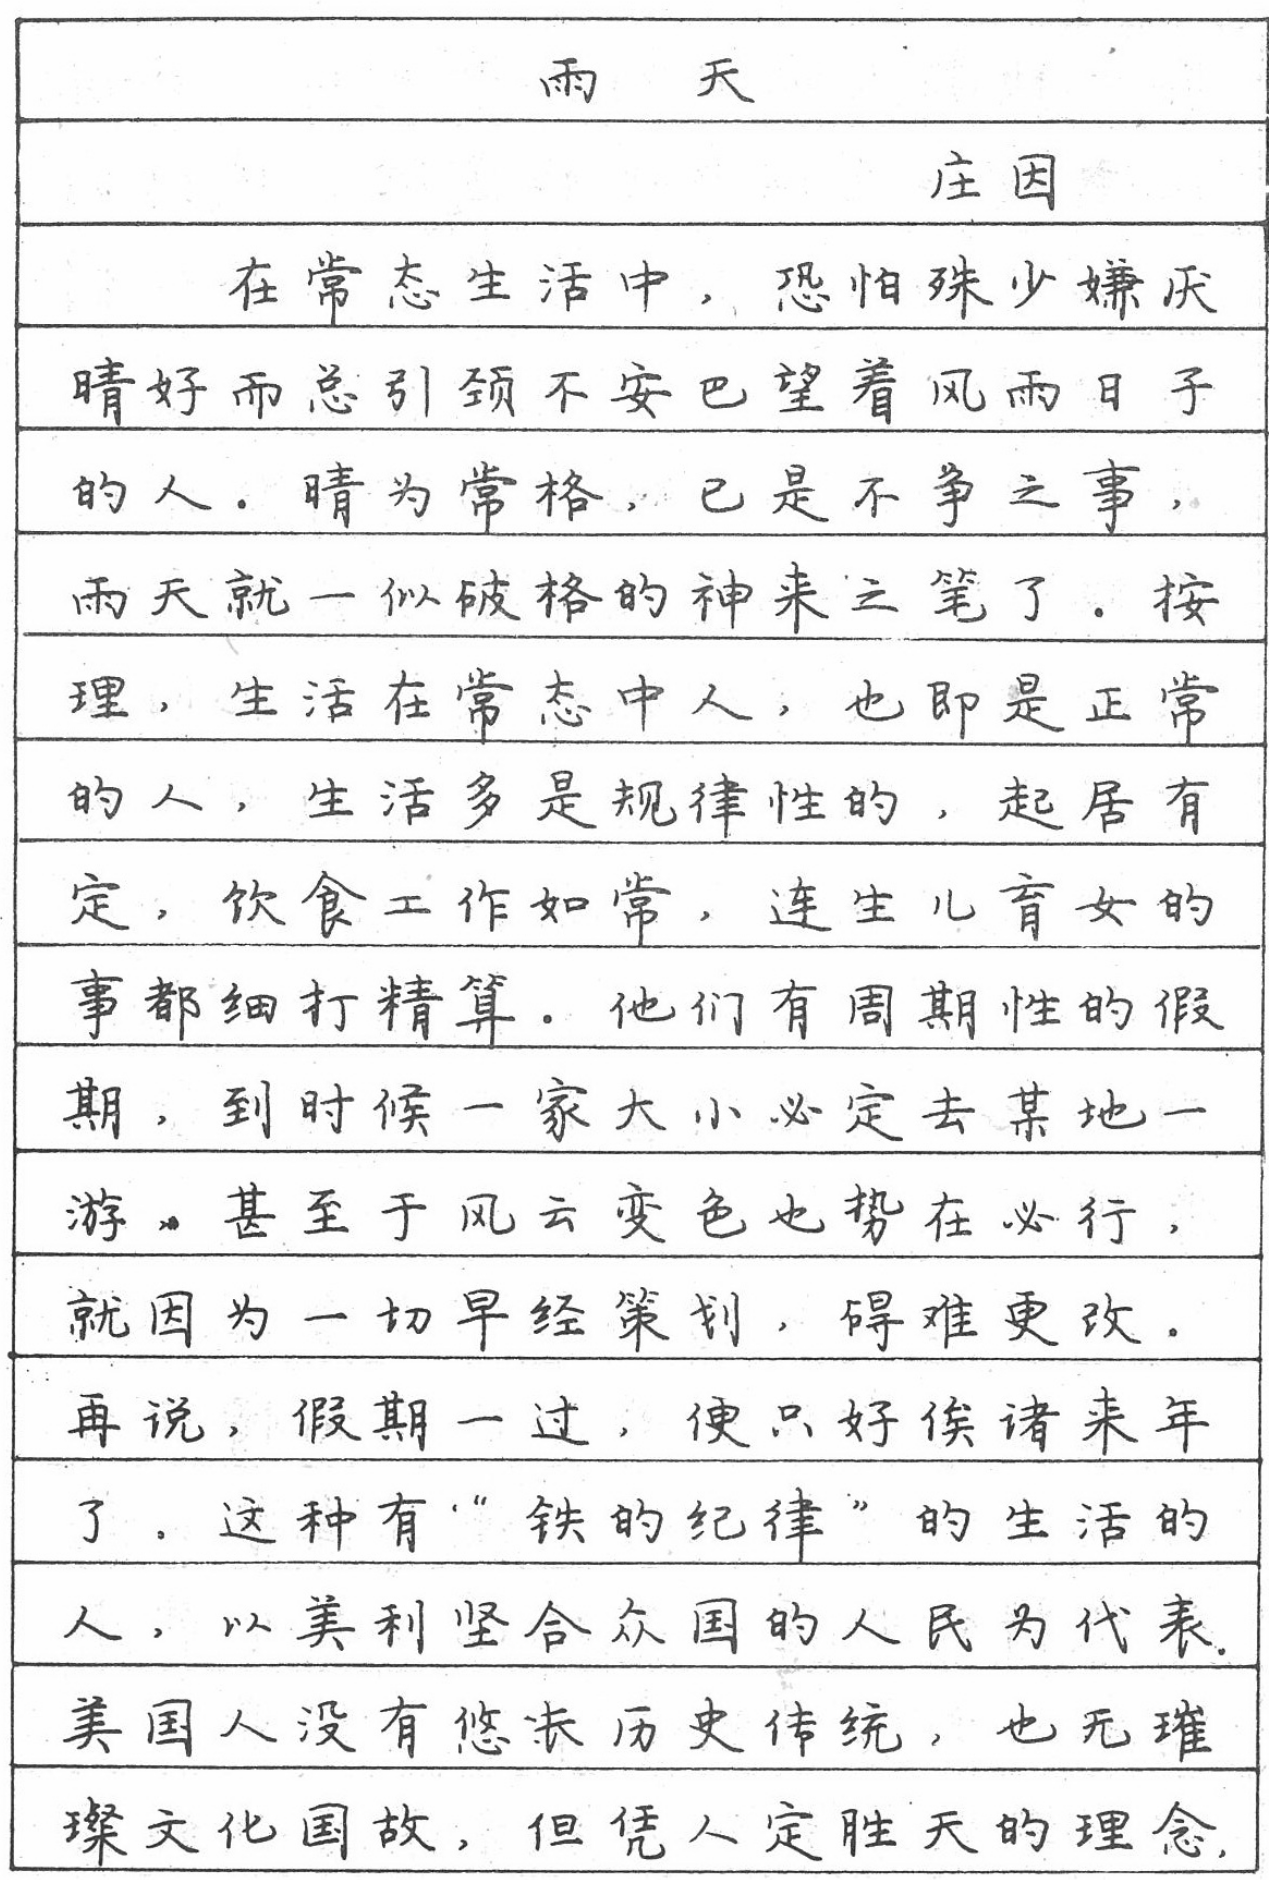 How To Improve Your Chinese Handwriting